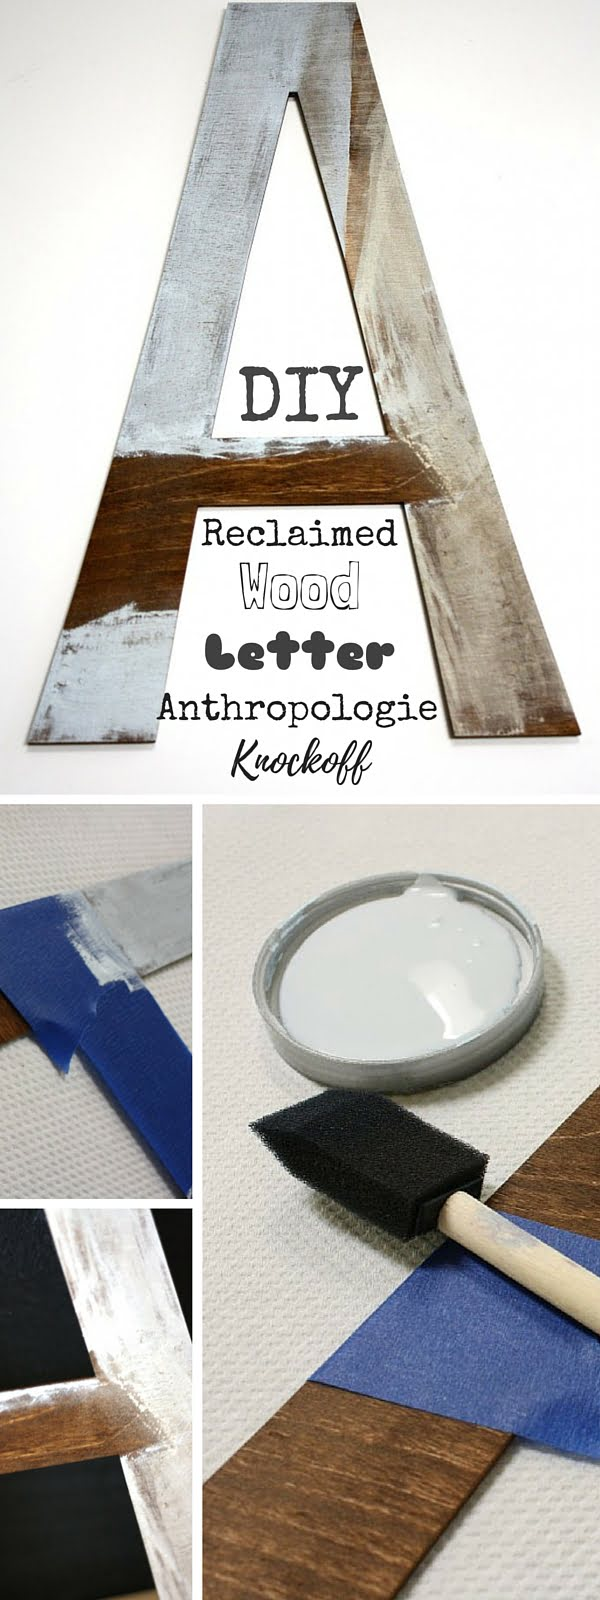 Check out the tutorial:  Anthropologie Reclaimed Wood Letter Knockoff